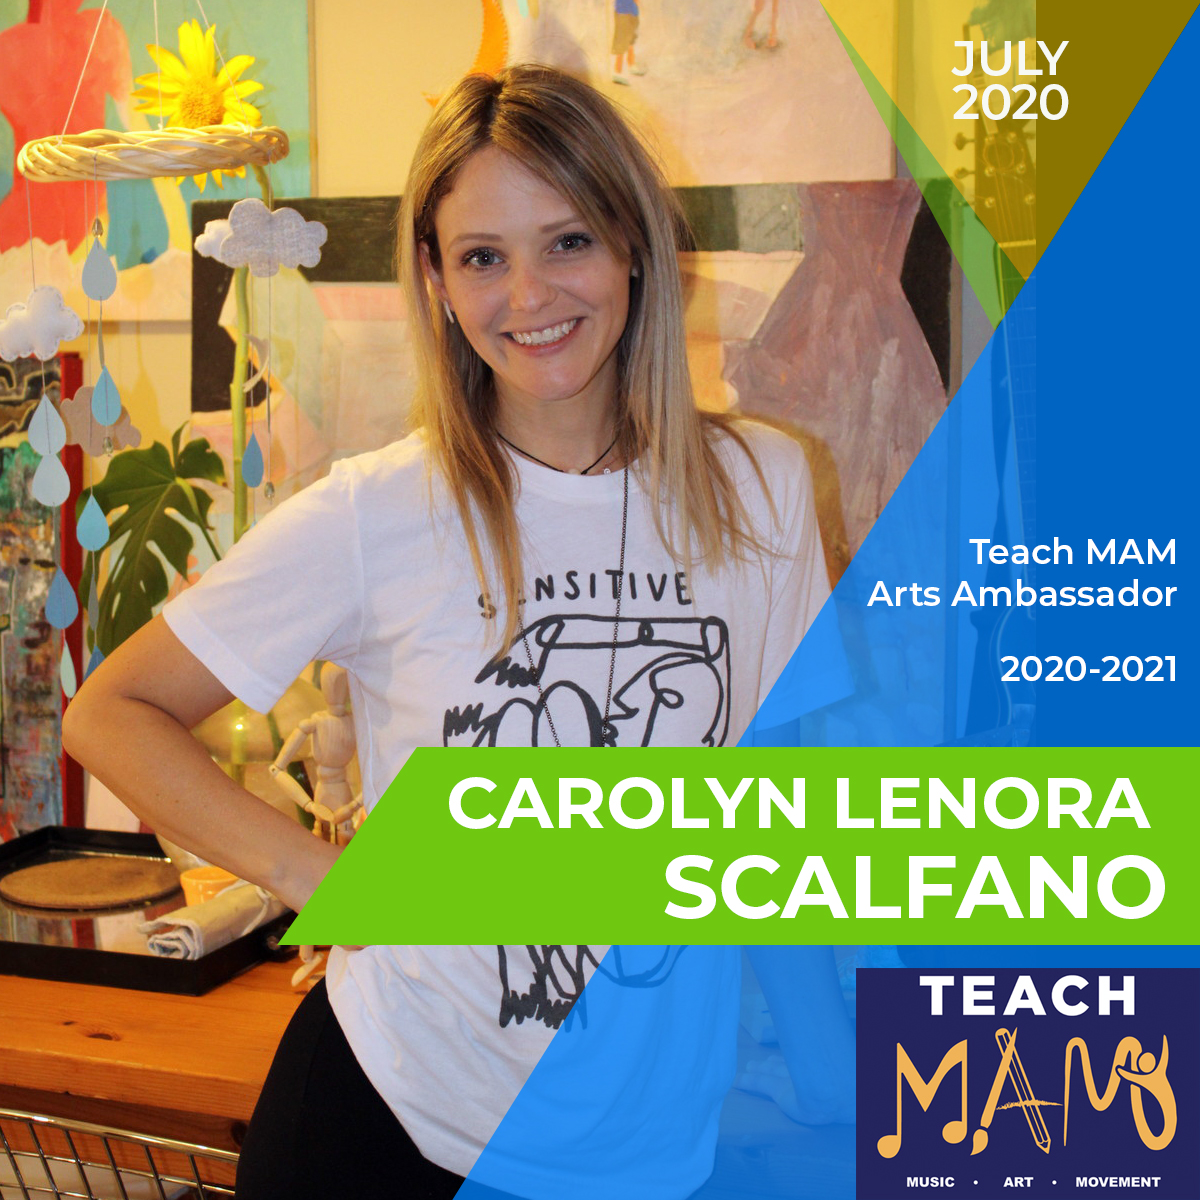 Teach MAM – Arts Ambassador Carolyn Lenora Scalfano